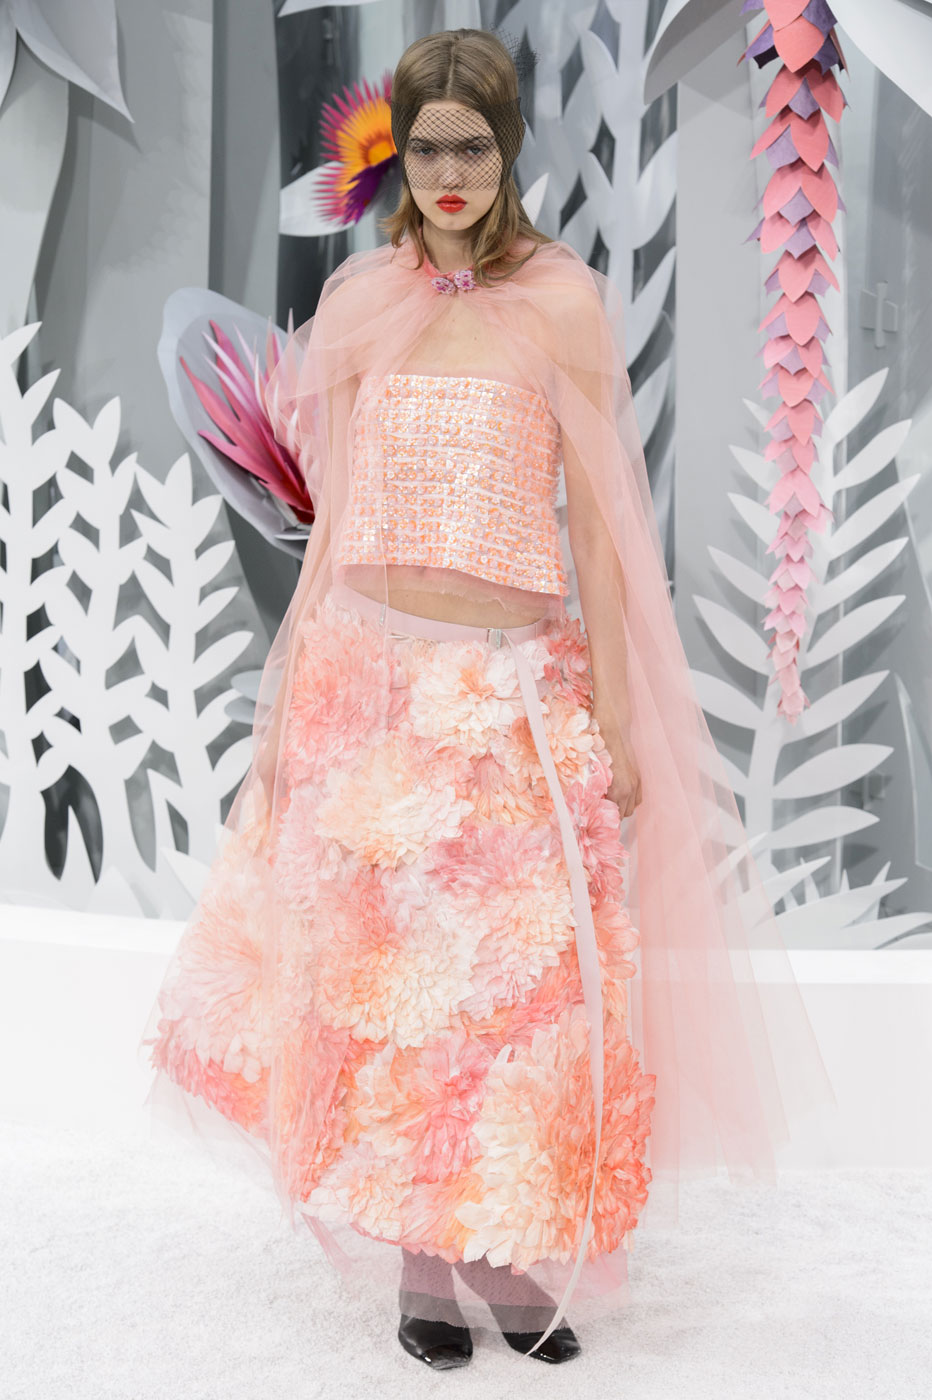 Chanel-fashion-runway-show-haute-couture-paris-spring-summer-2015-the-impression-139